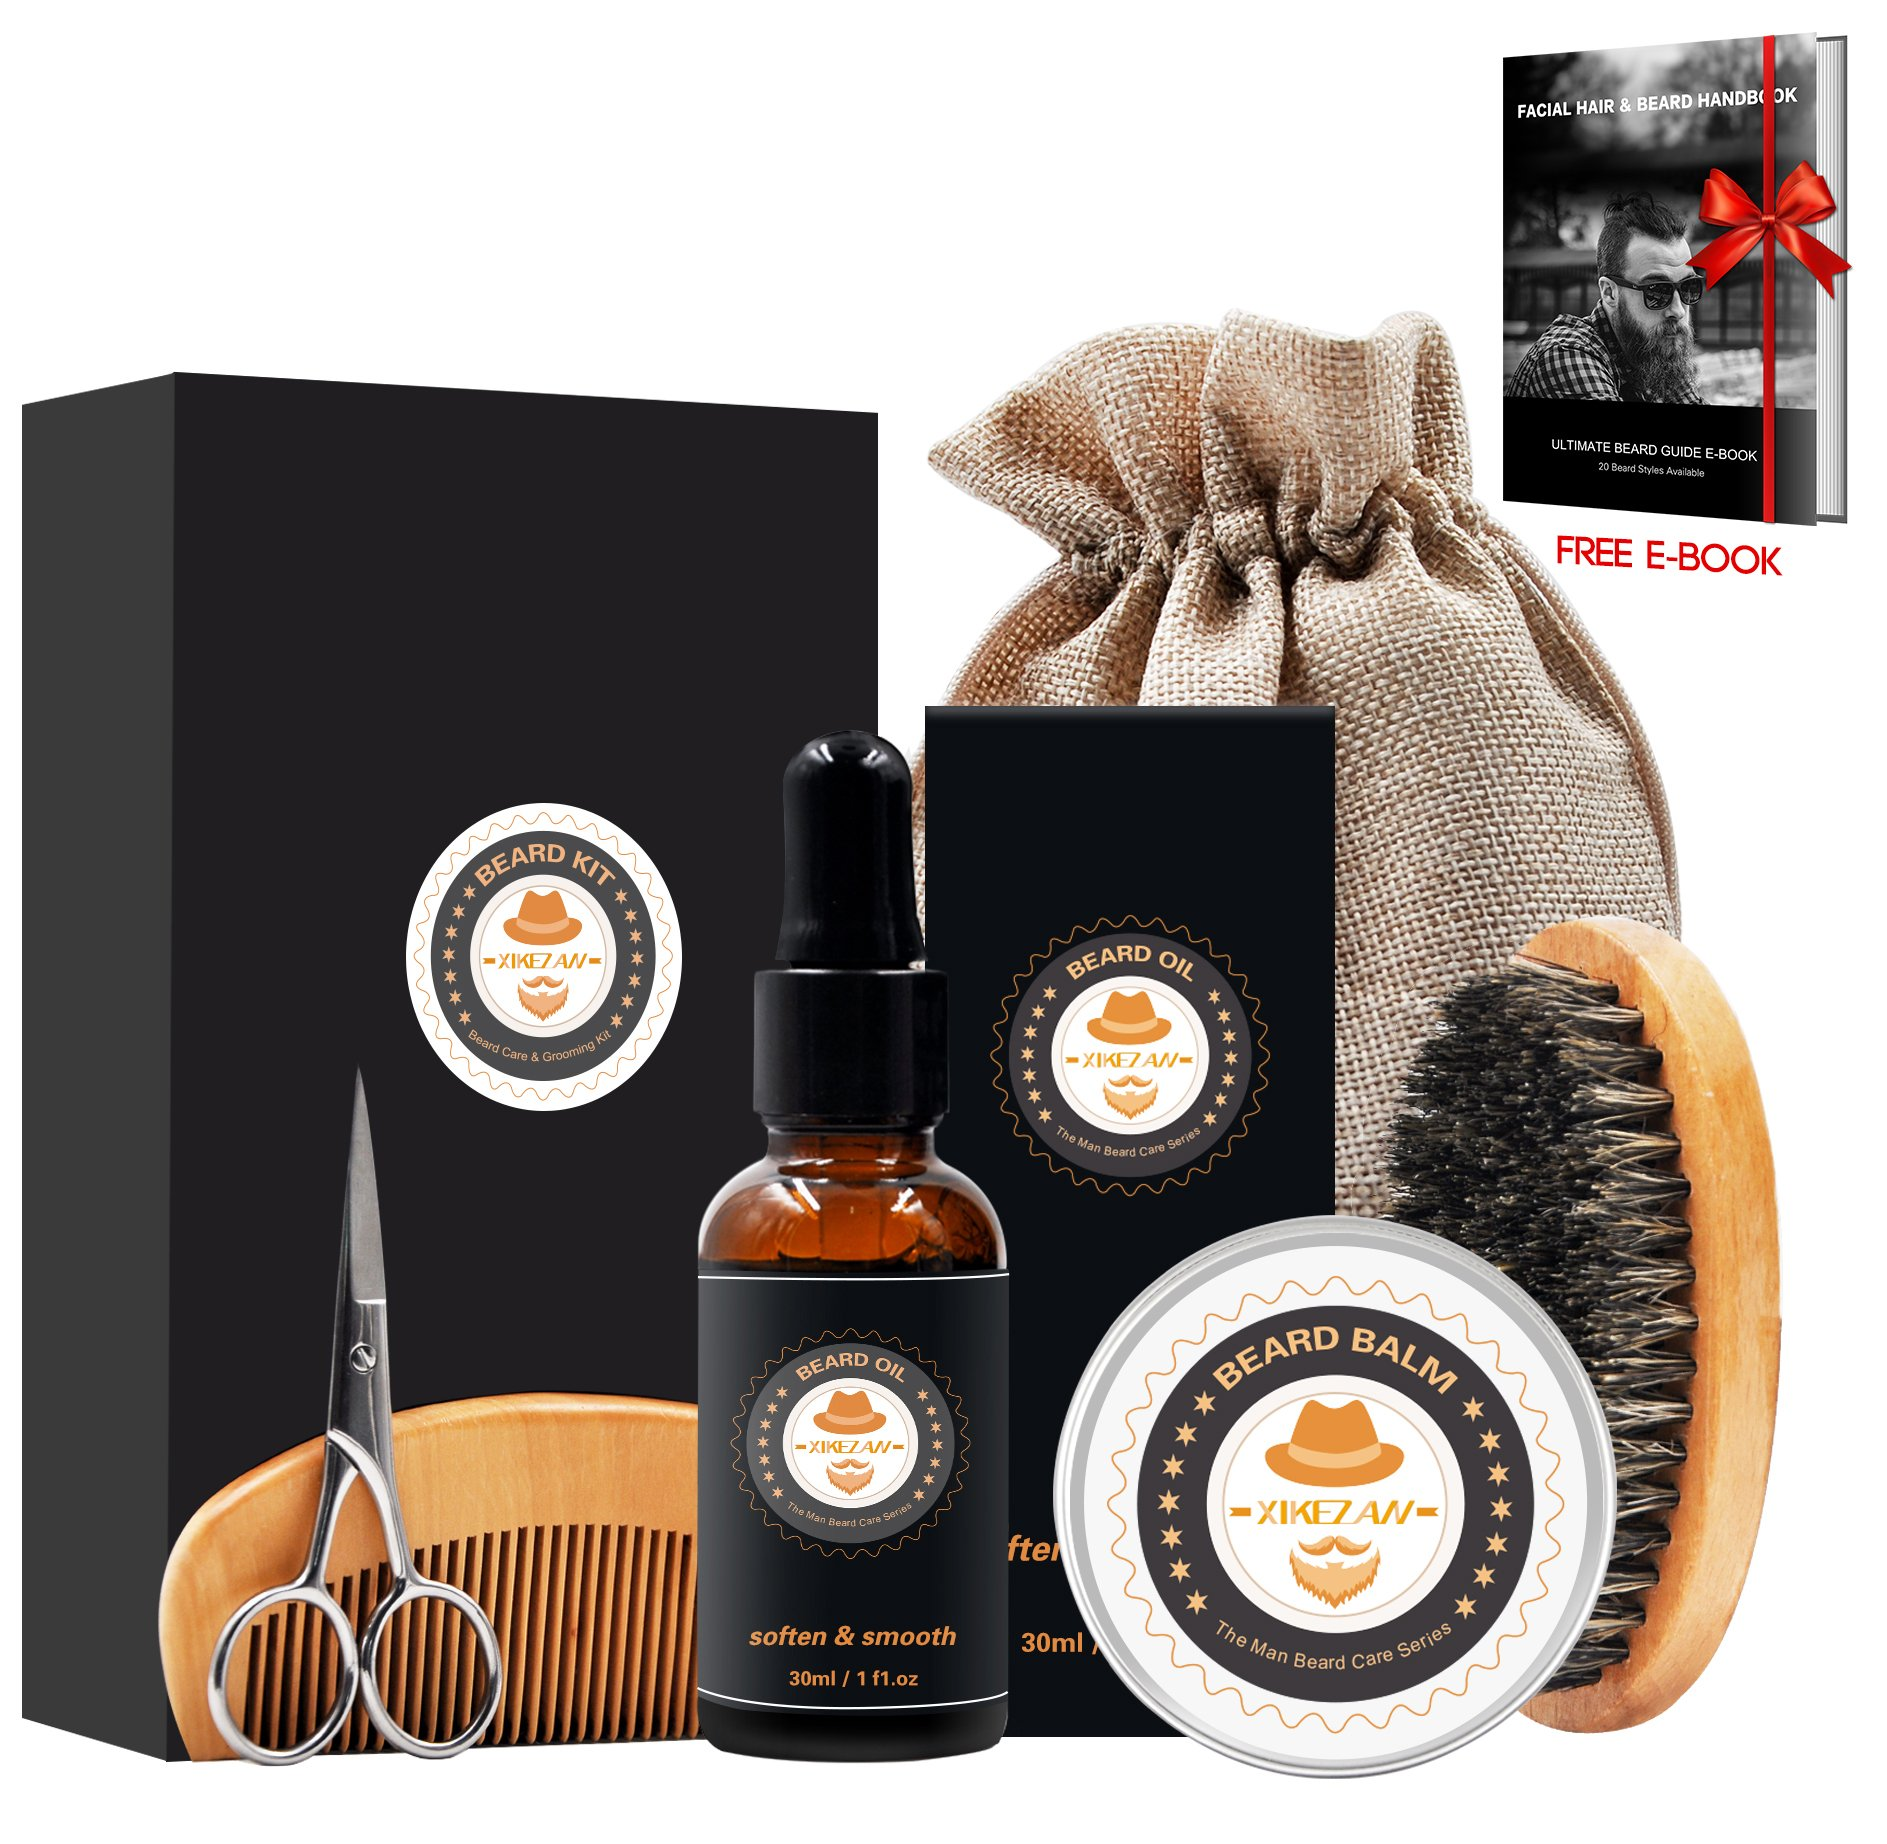 XIKEZAN Mens gifts for Men Beard Care Grooming & Trimming Kit Unscented Beard Conditioner Oil + Mustache & Beard Comb+Balm Wax+Brush+Mustache Scissors Trimmer for Styling Shaping & Growth